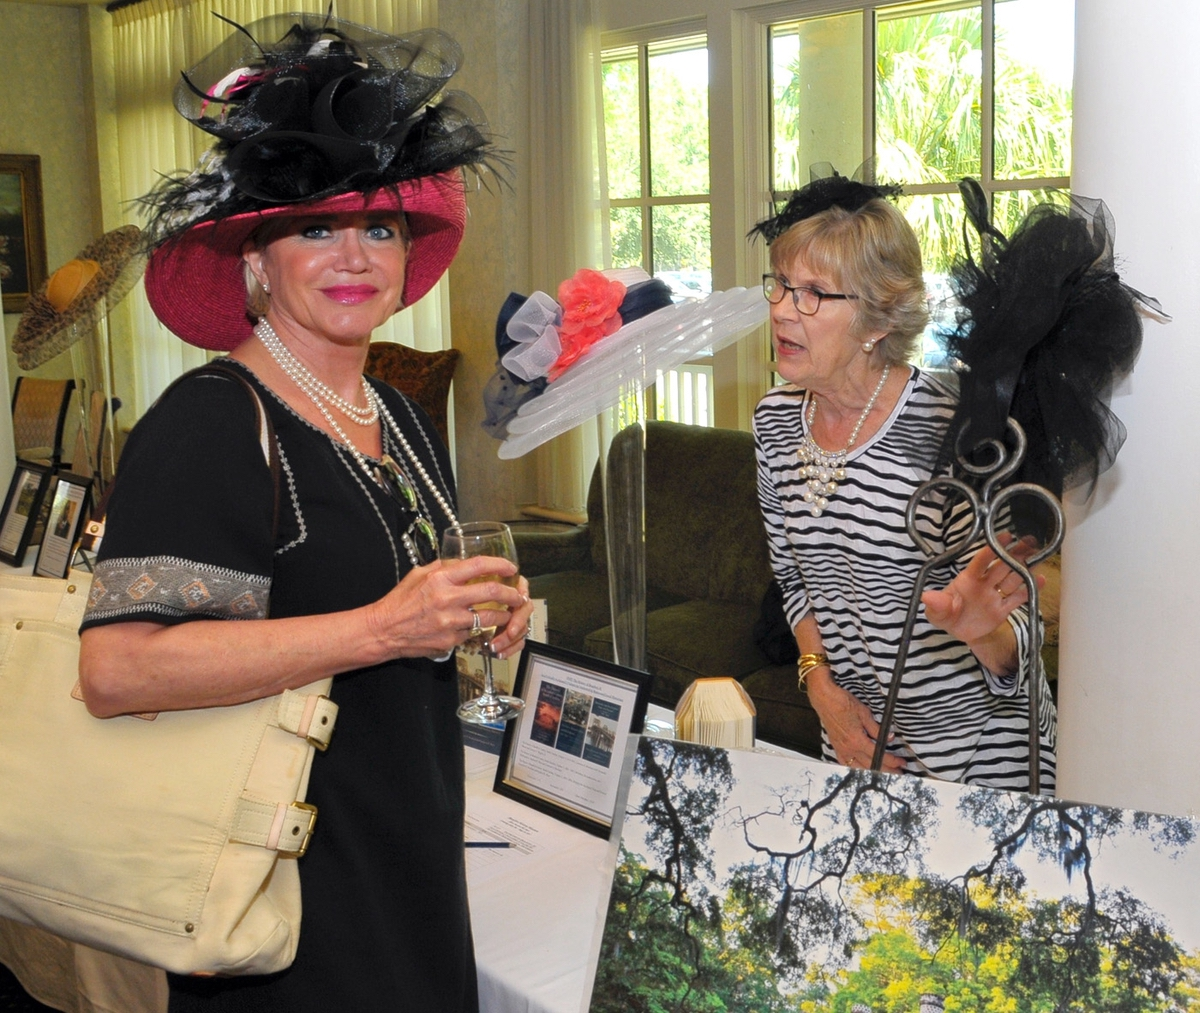 Terri Goldenberg, left, chats with Jane Sidwell at the silent auction table.